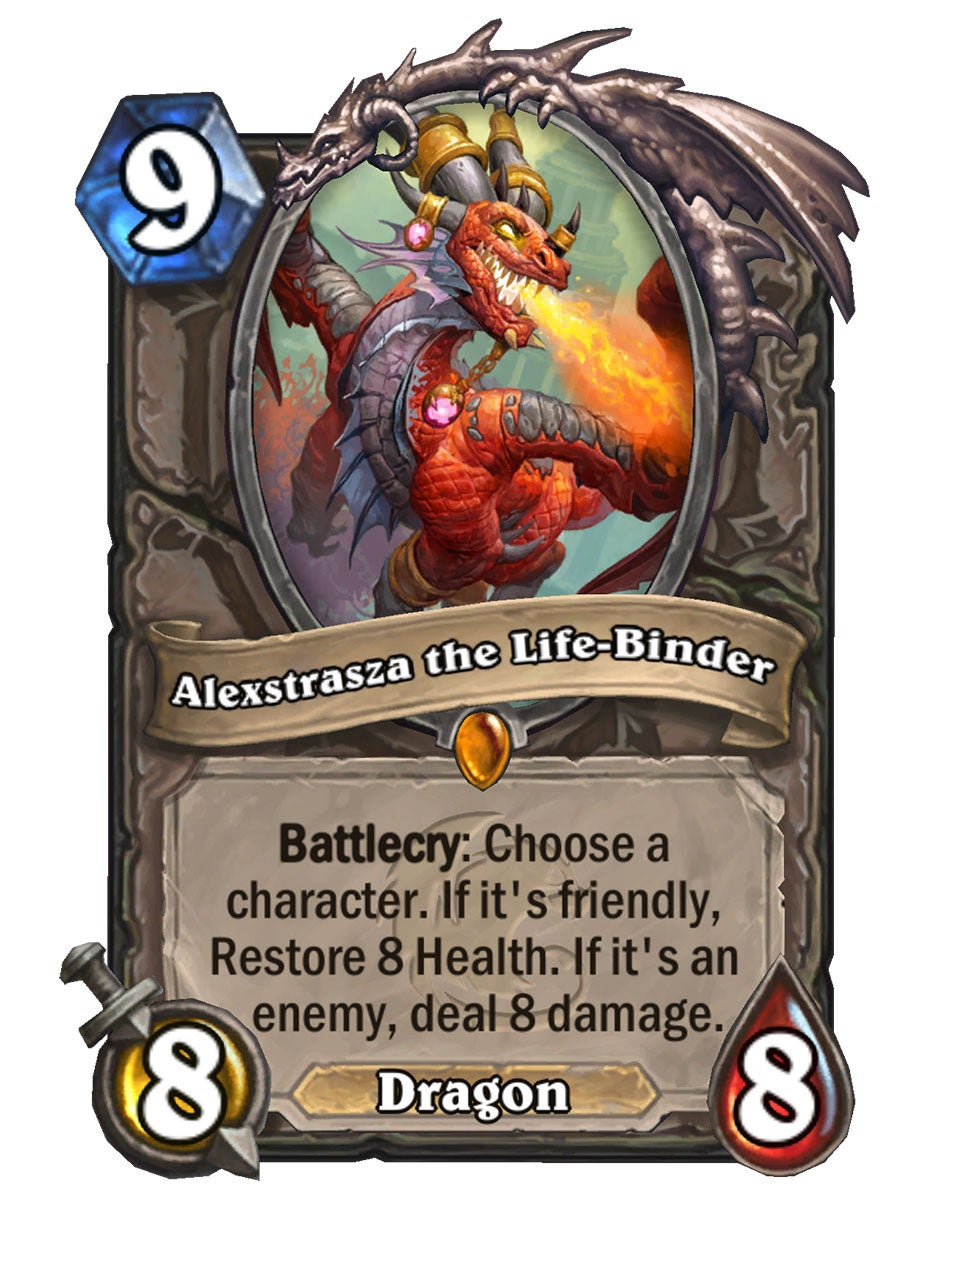 The brand new cards being introduced with Hearthstone's first Core set for the Year of the Gryphon.